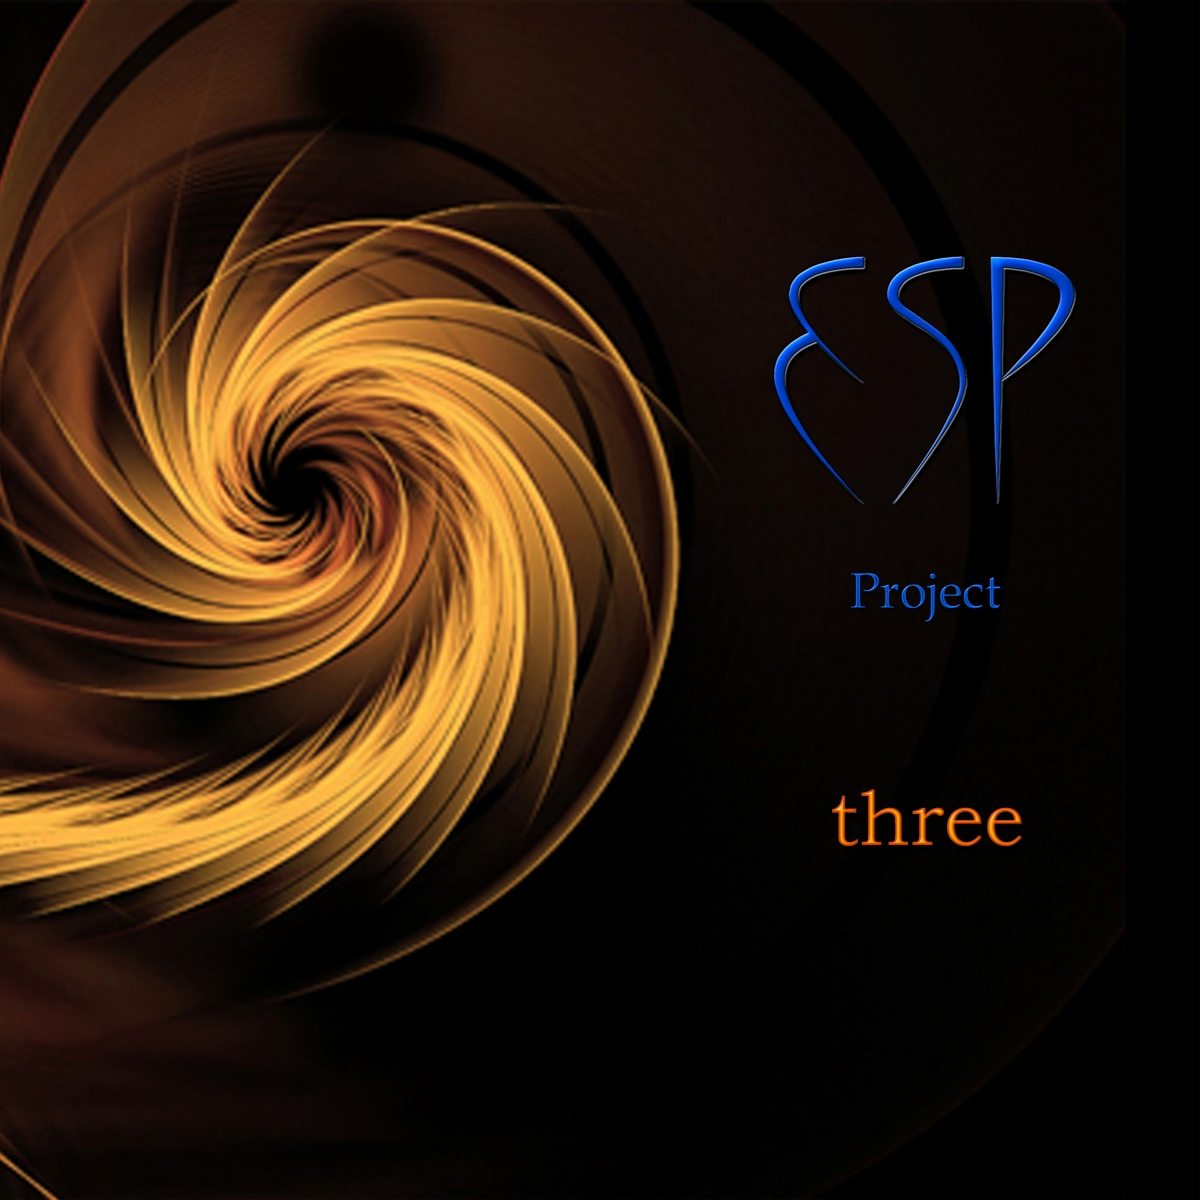 ESP Project - three